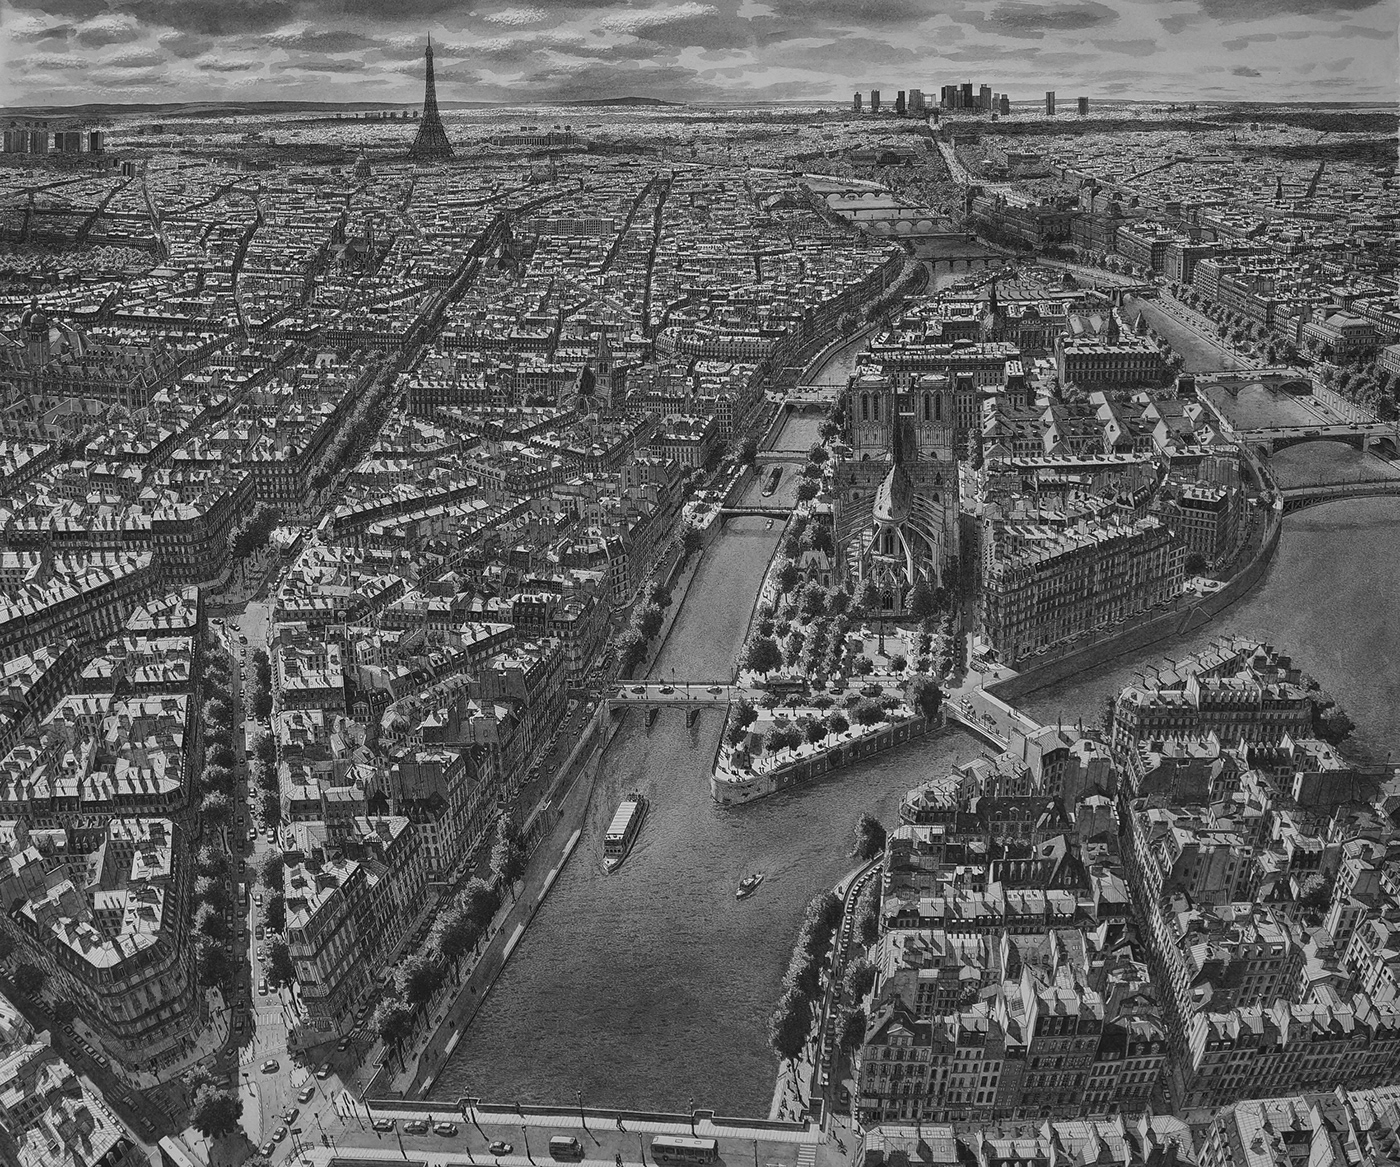 architecture art city cityscape Drawing  france Paris Perspective Realism urban.